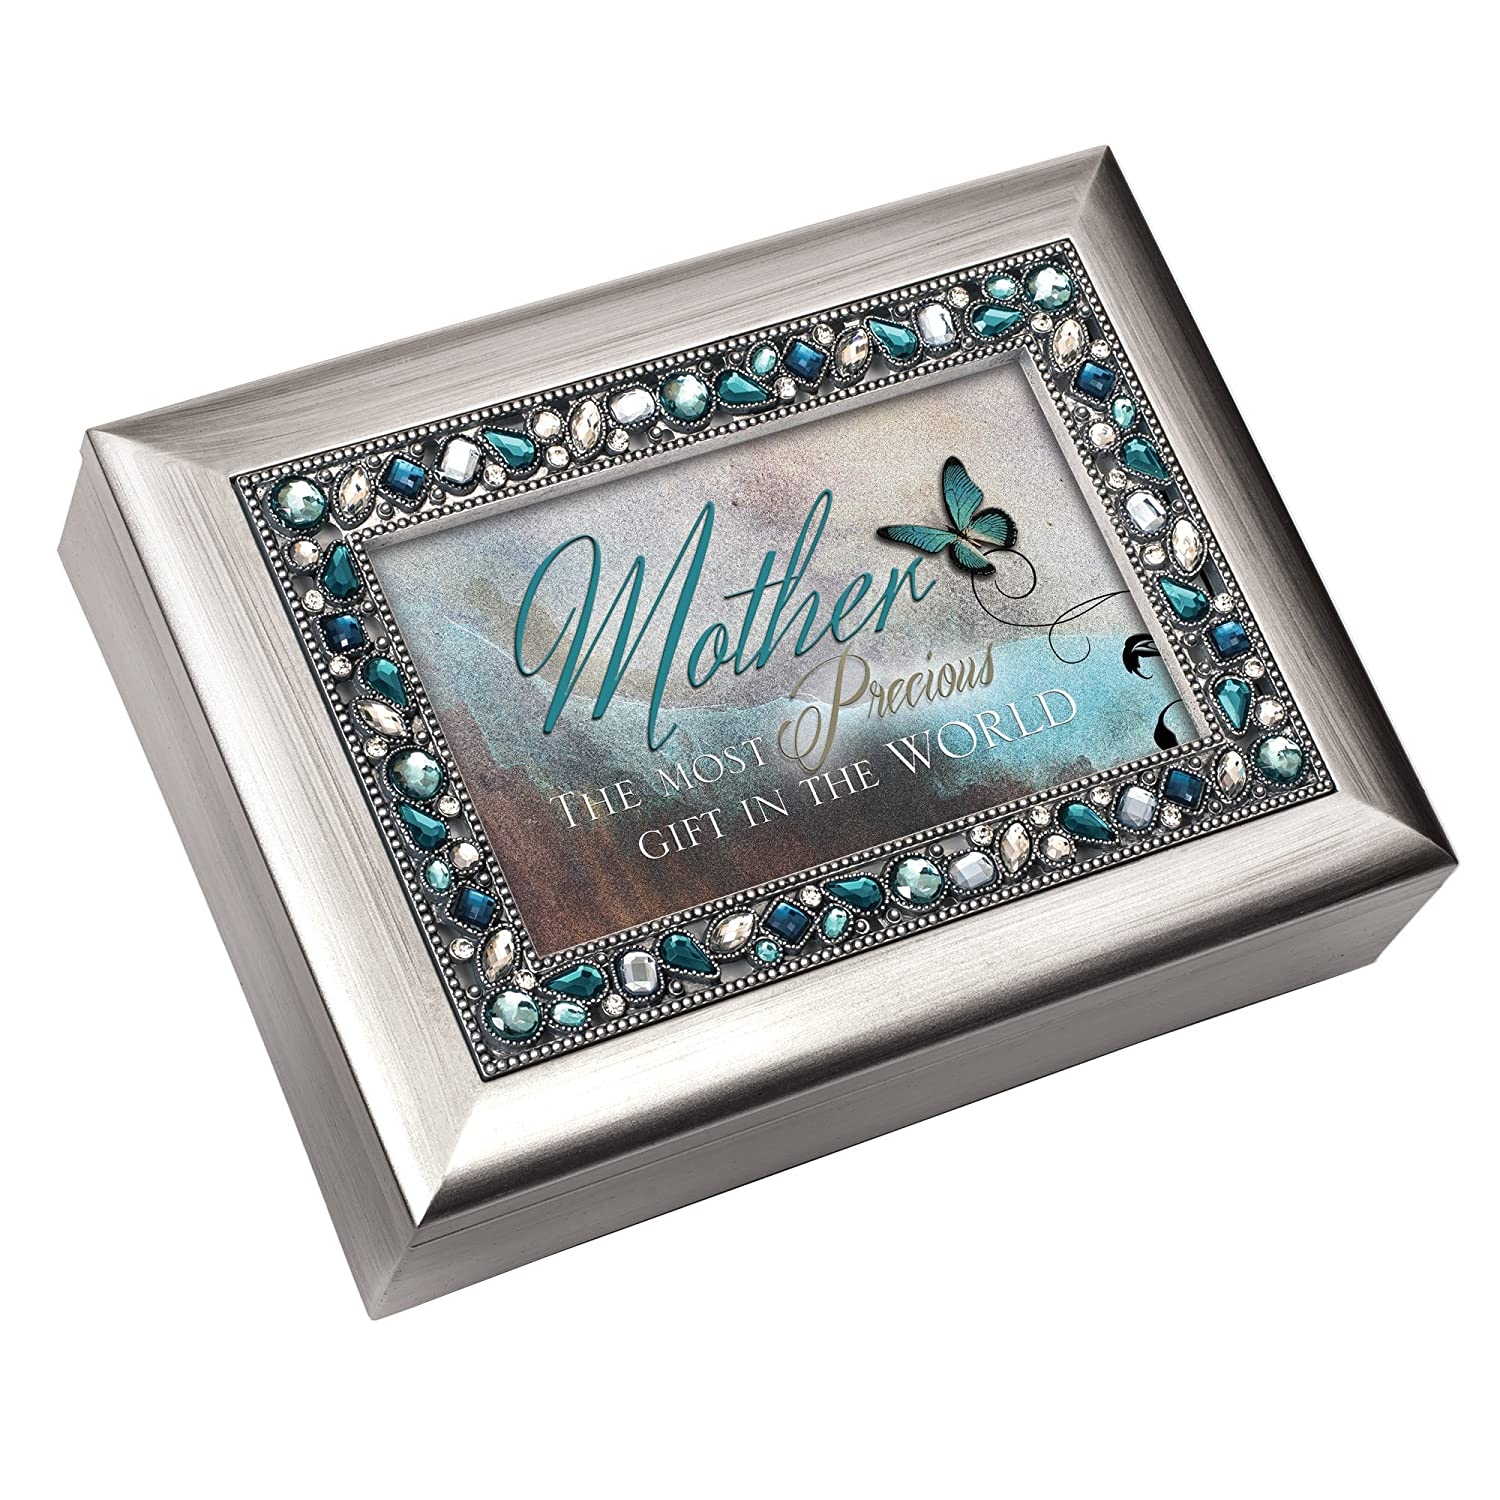 Cottage Garden Mother The Most Precious Gift in The World Brushed Silver Finish Decorative Jewel Lid Musical Music Jewelry Box - Plays Wind Beneath My Wings